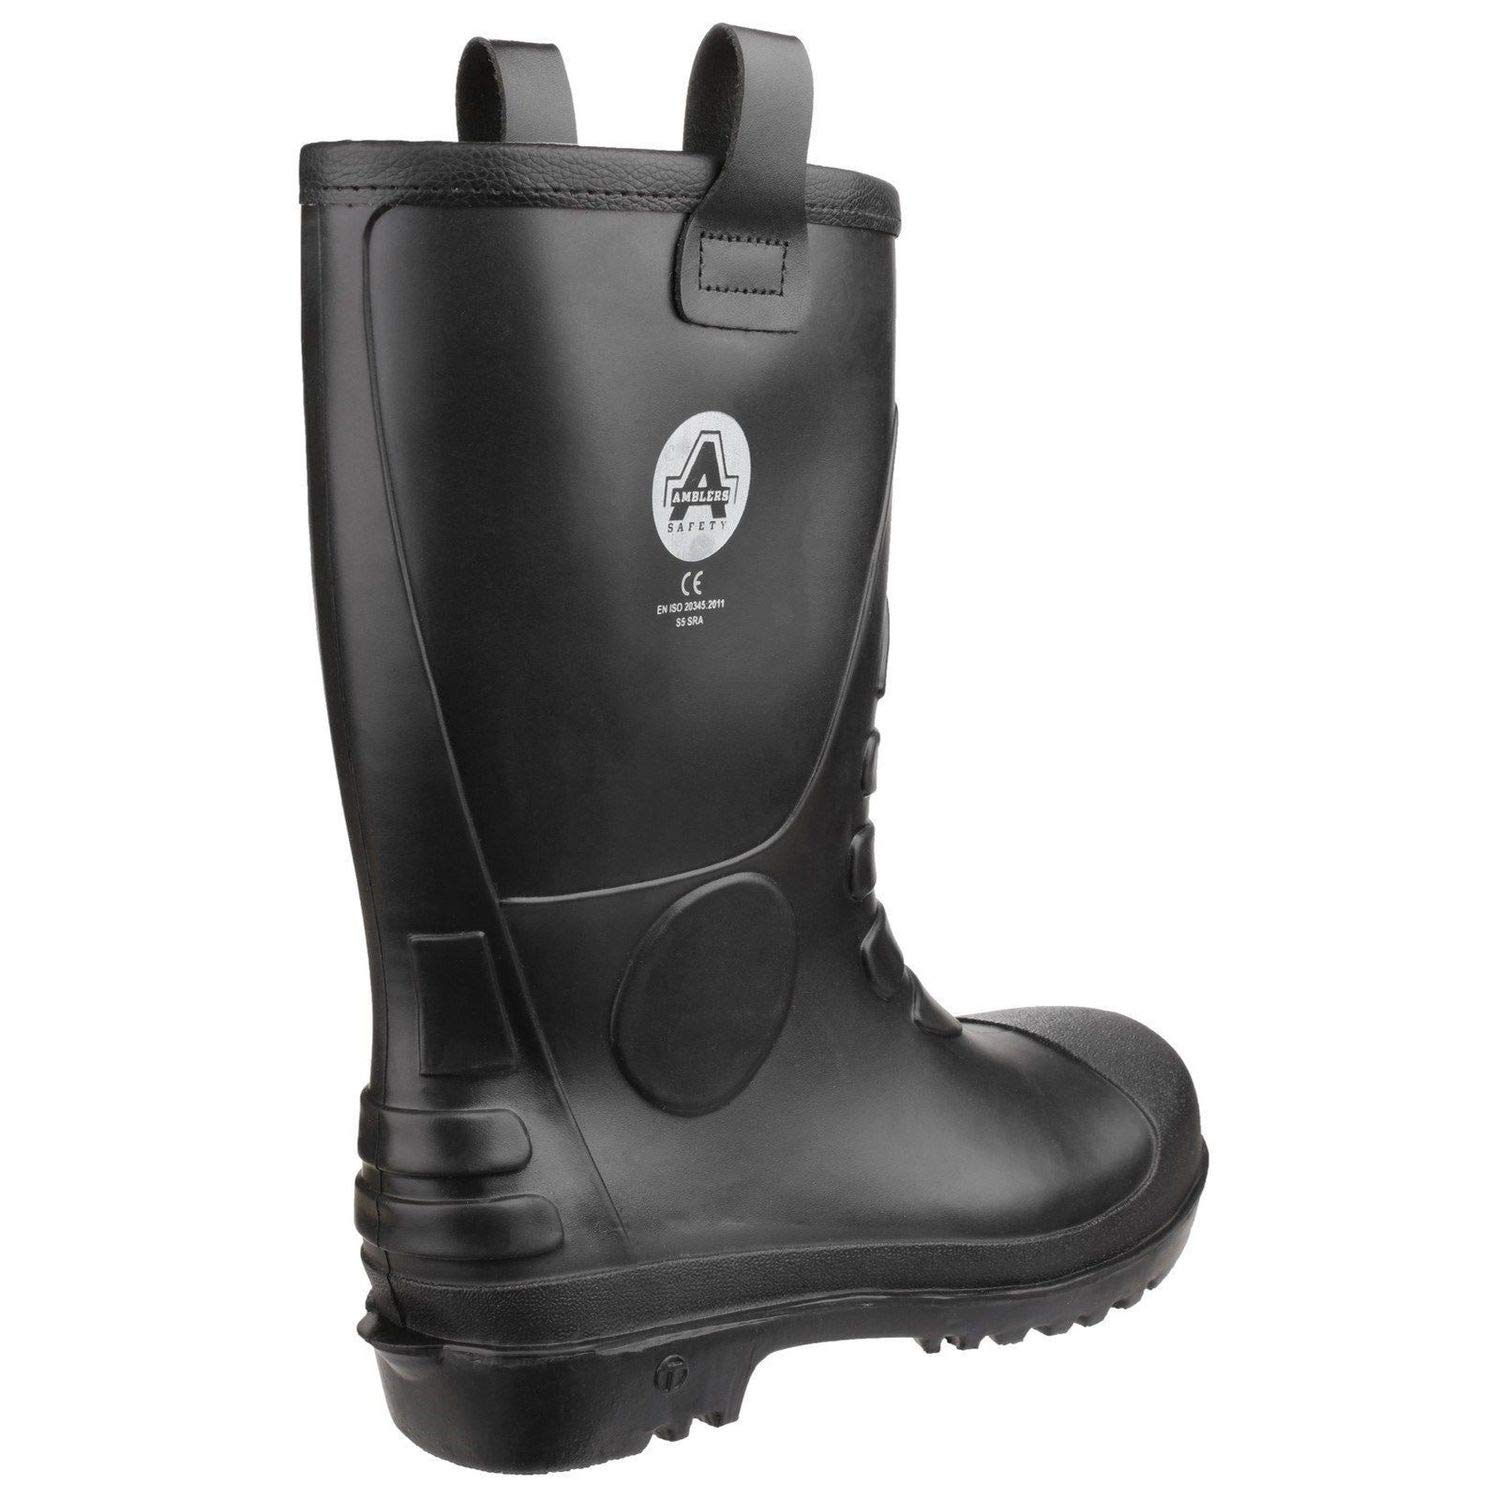 a89989ea09d Amblers FS90 Waterproof PVC Pull on Safety Rigger Boot - 24926 Black